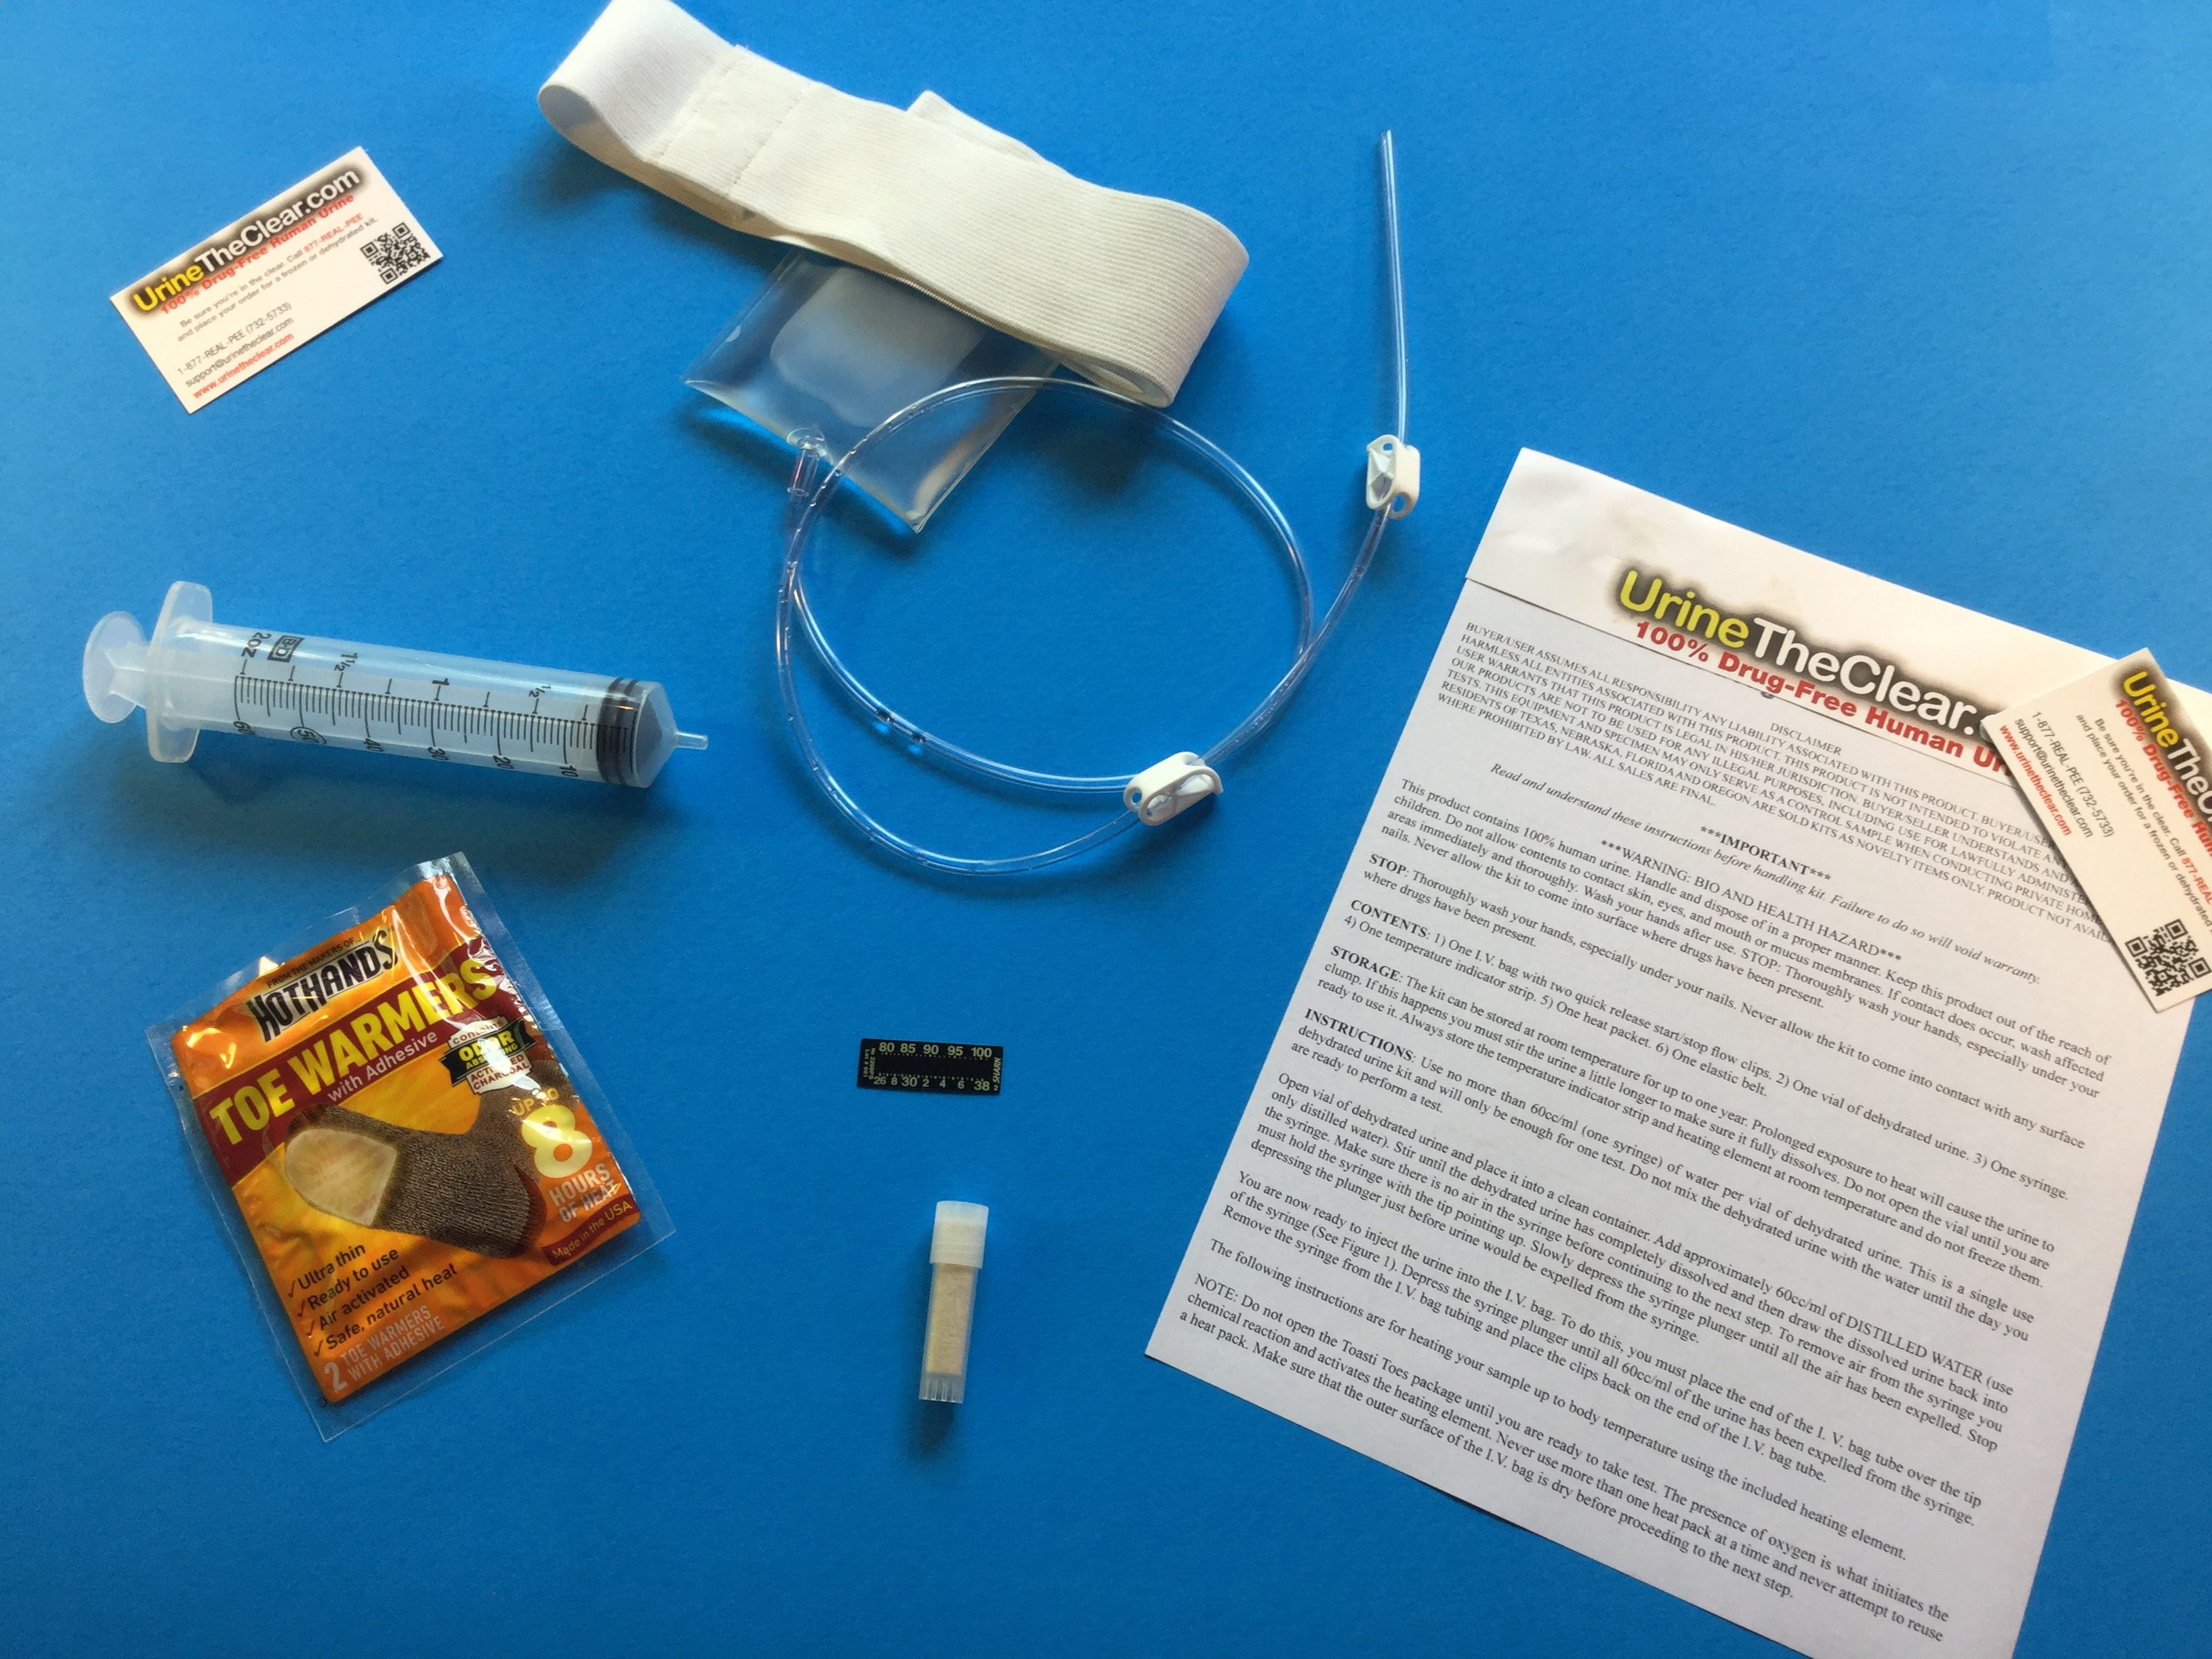 Single Use Dehydrated Urine Kit